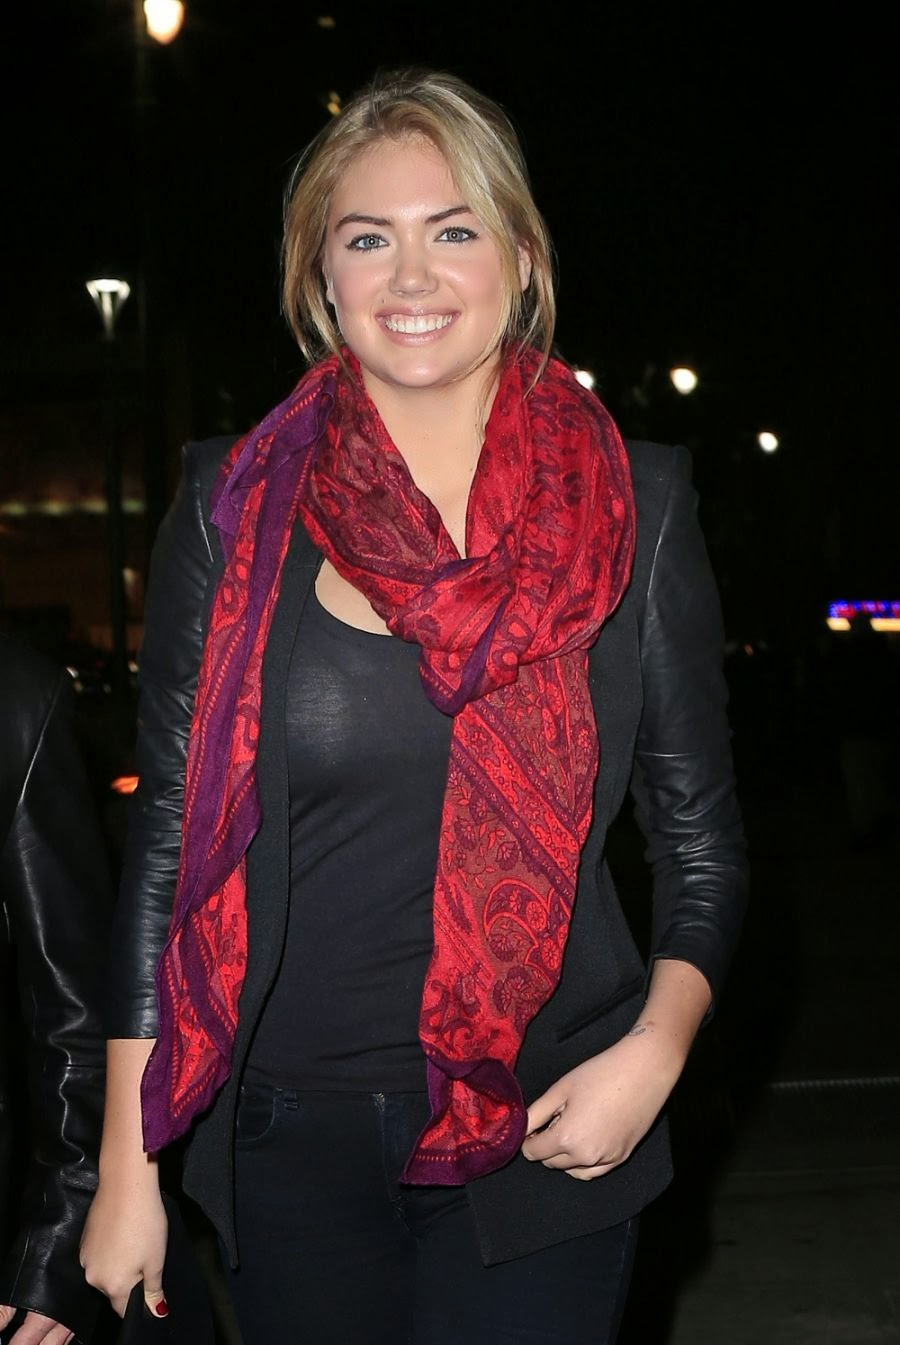 Kate Upton after Basketball Game Photos at Madison Square Garden